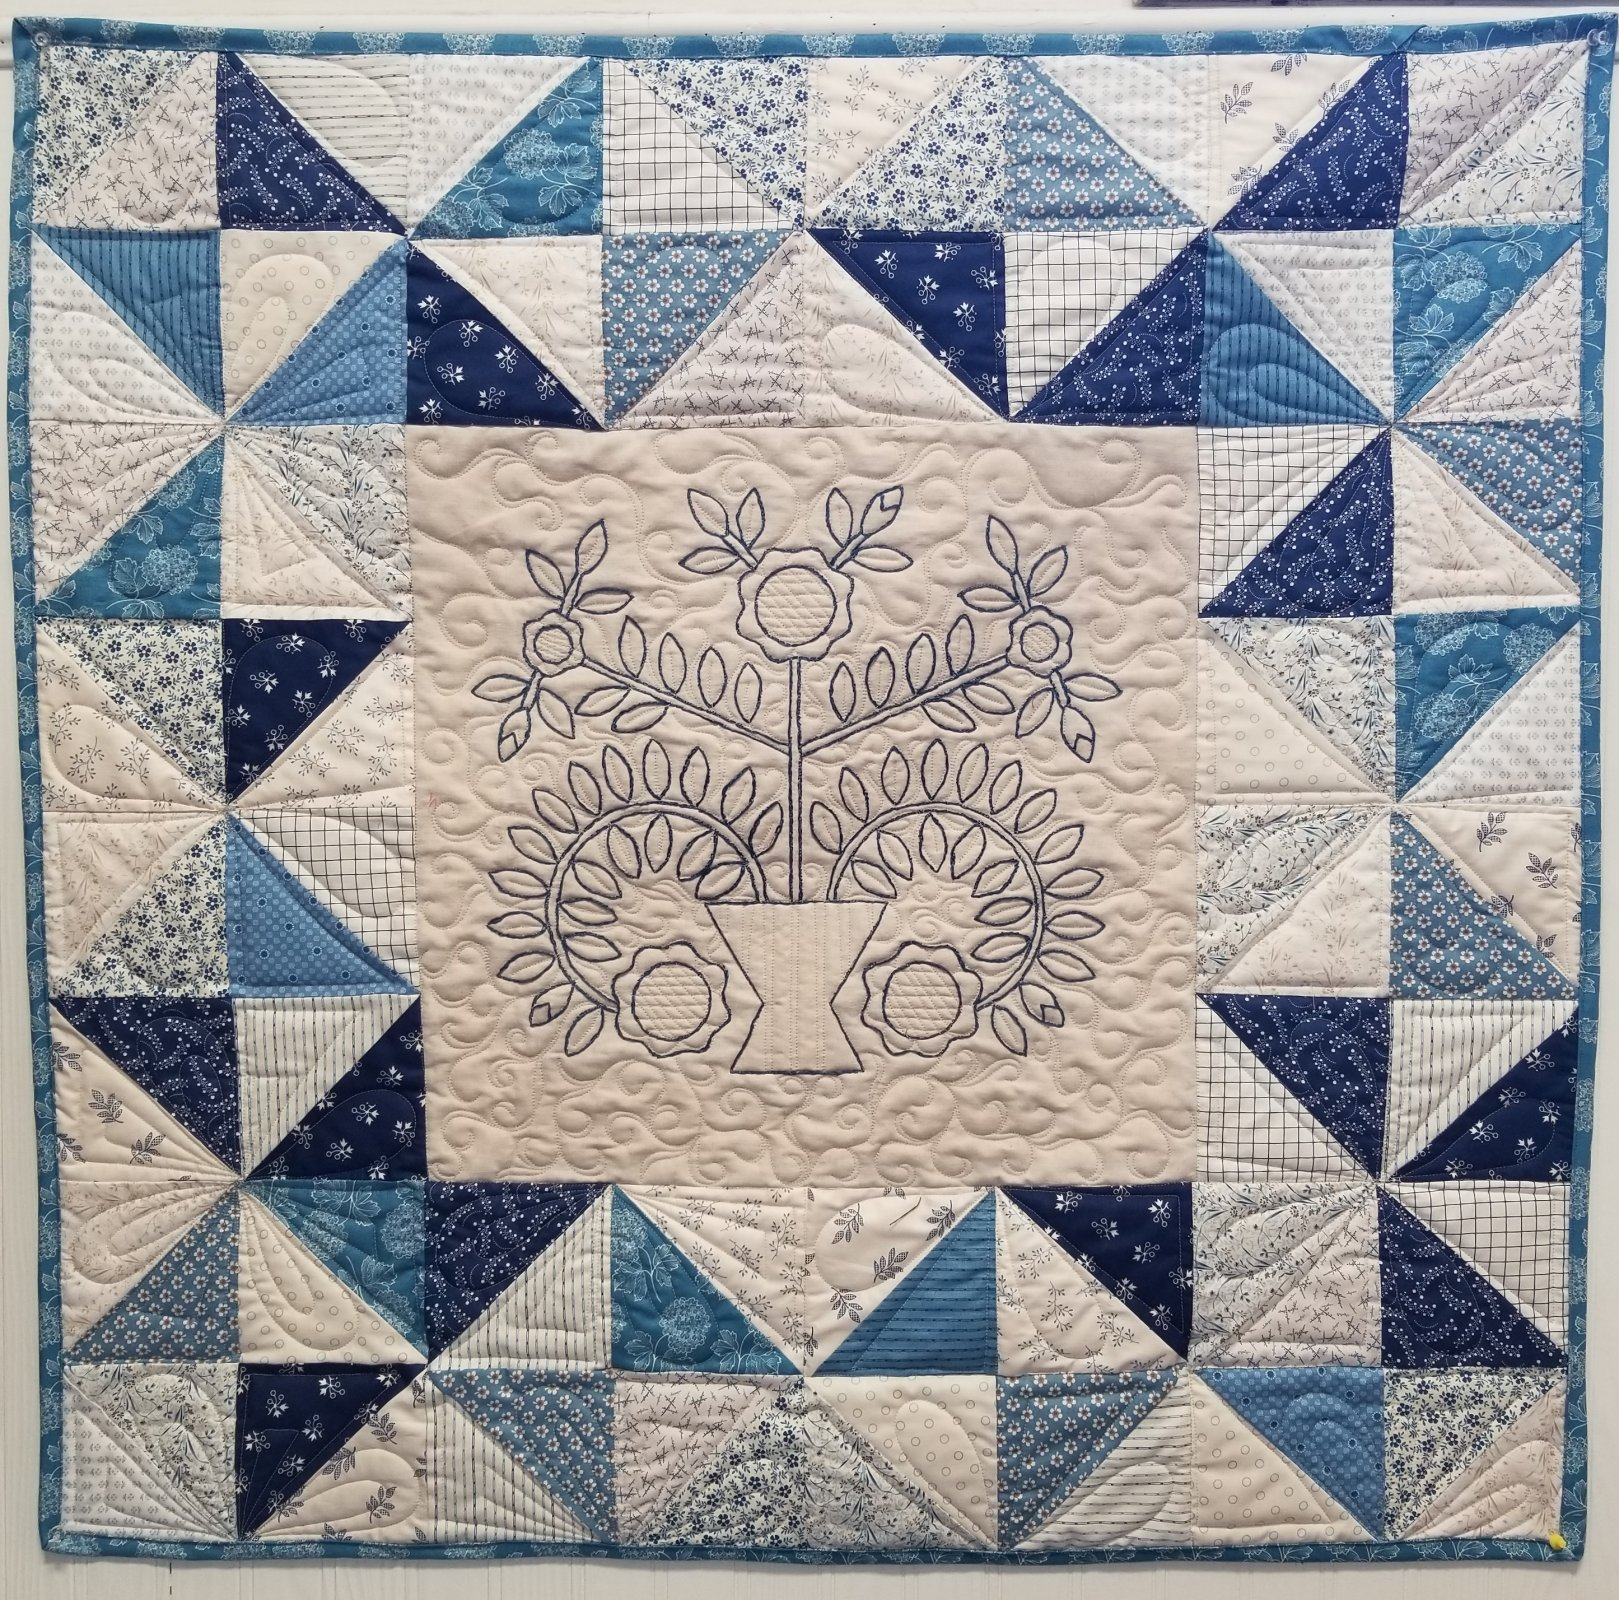 Blue-and-White Embroidery Wall Hanging Fabric Kit